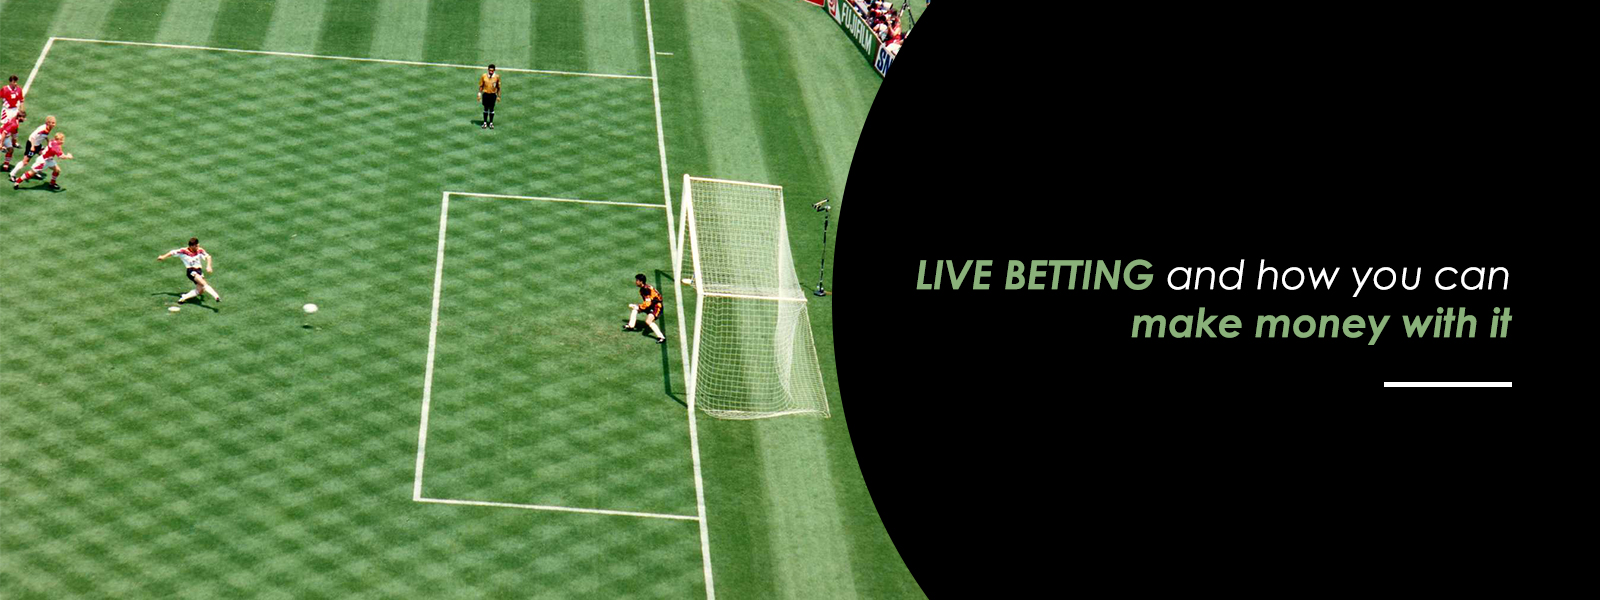 How To Make Money With Live Betting